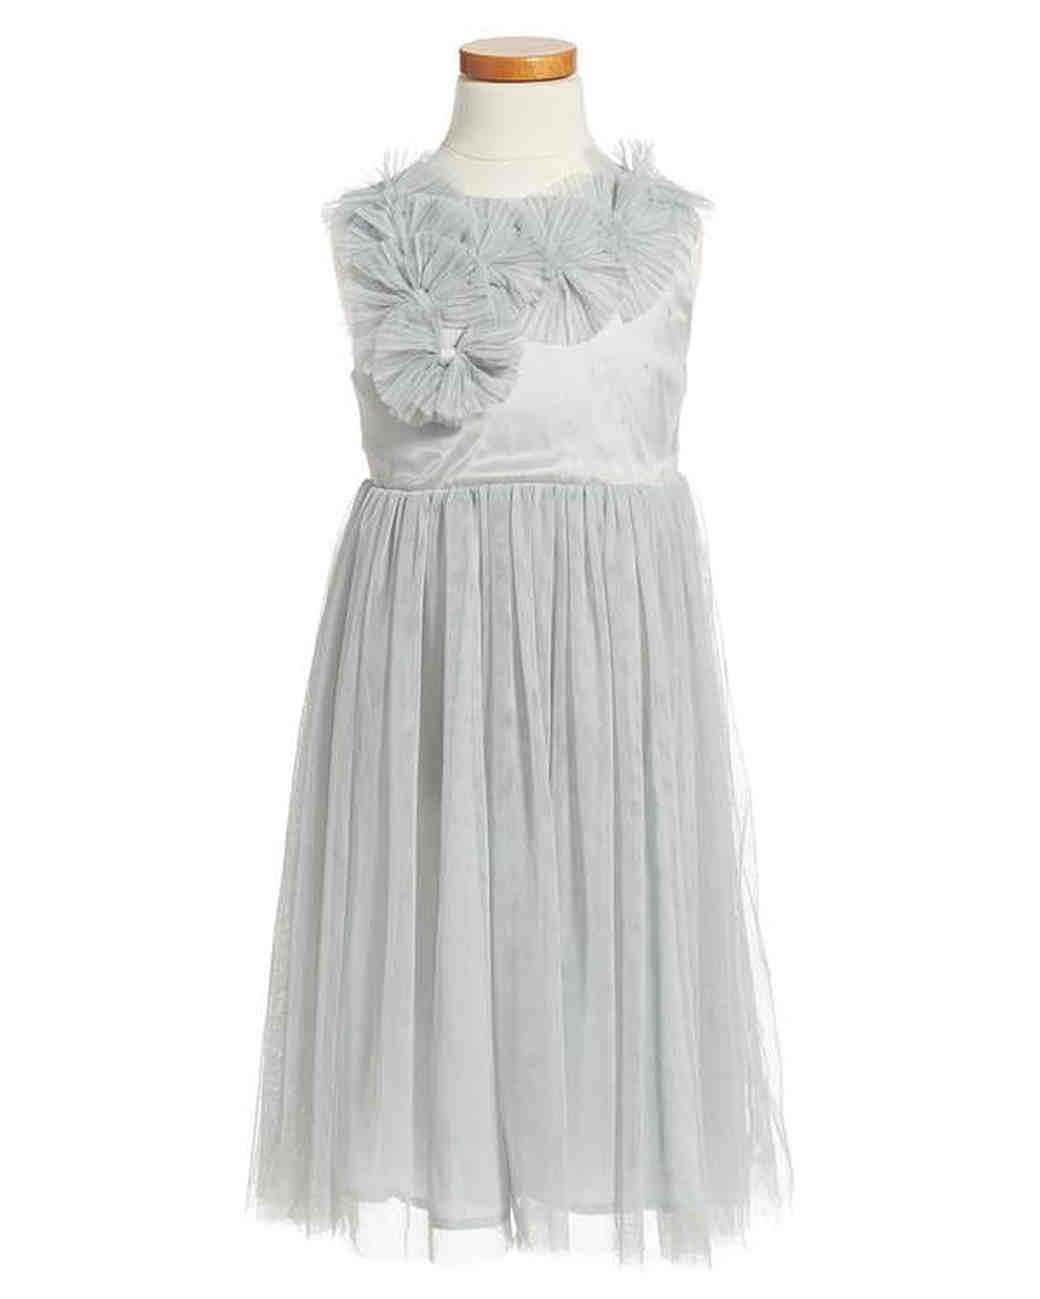 The most adorable flower girl dresses for a winter wedding martha the most adorable flower girl dresses for a winter wedding martha stewart weddings mightylinksfo